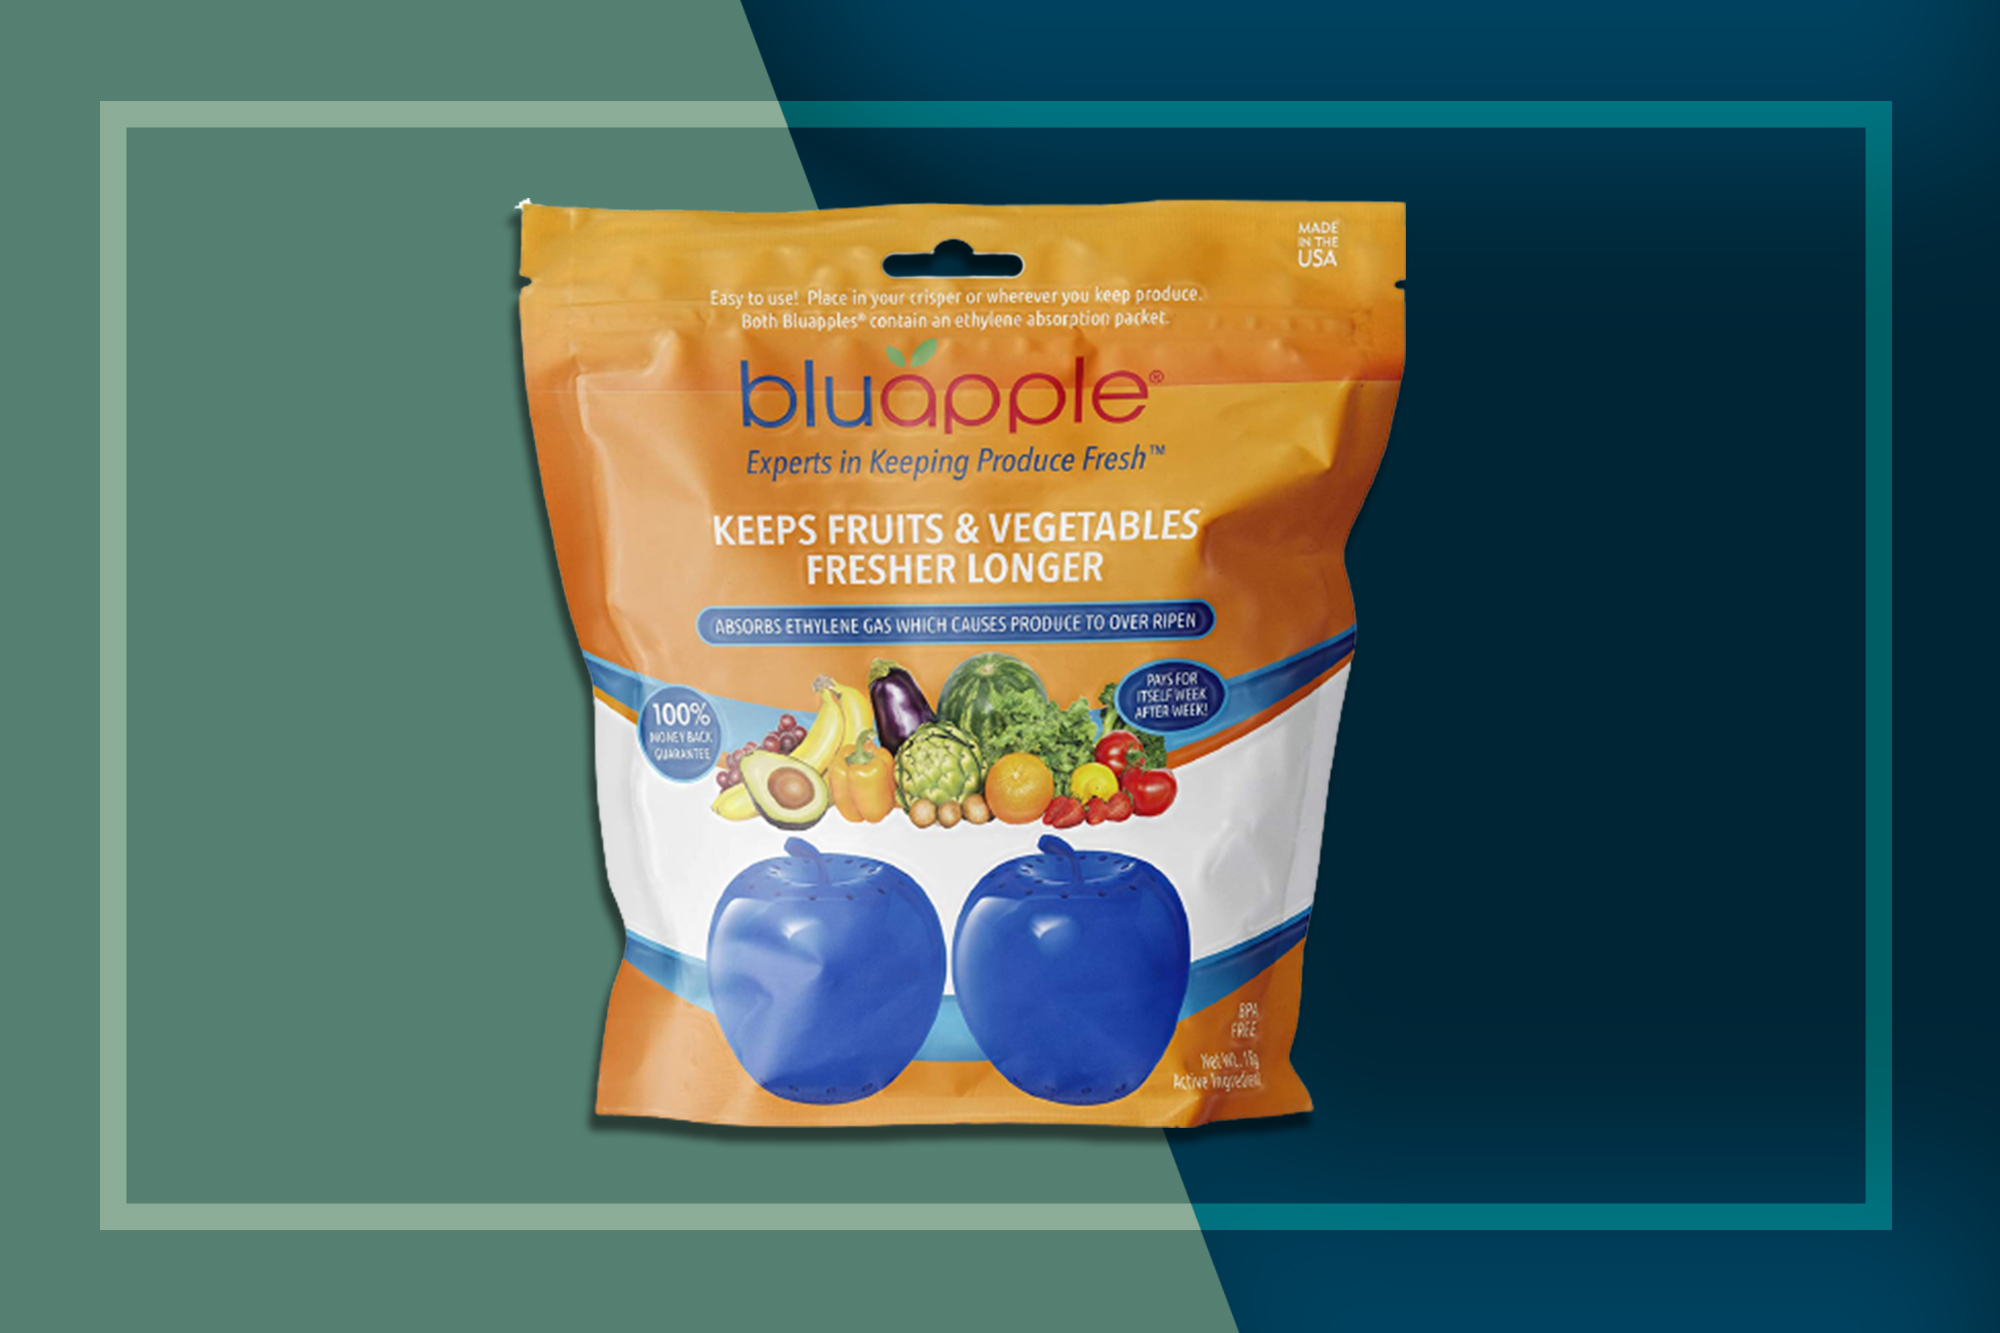 blu apple produce saver